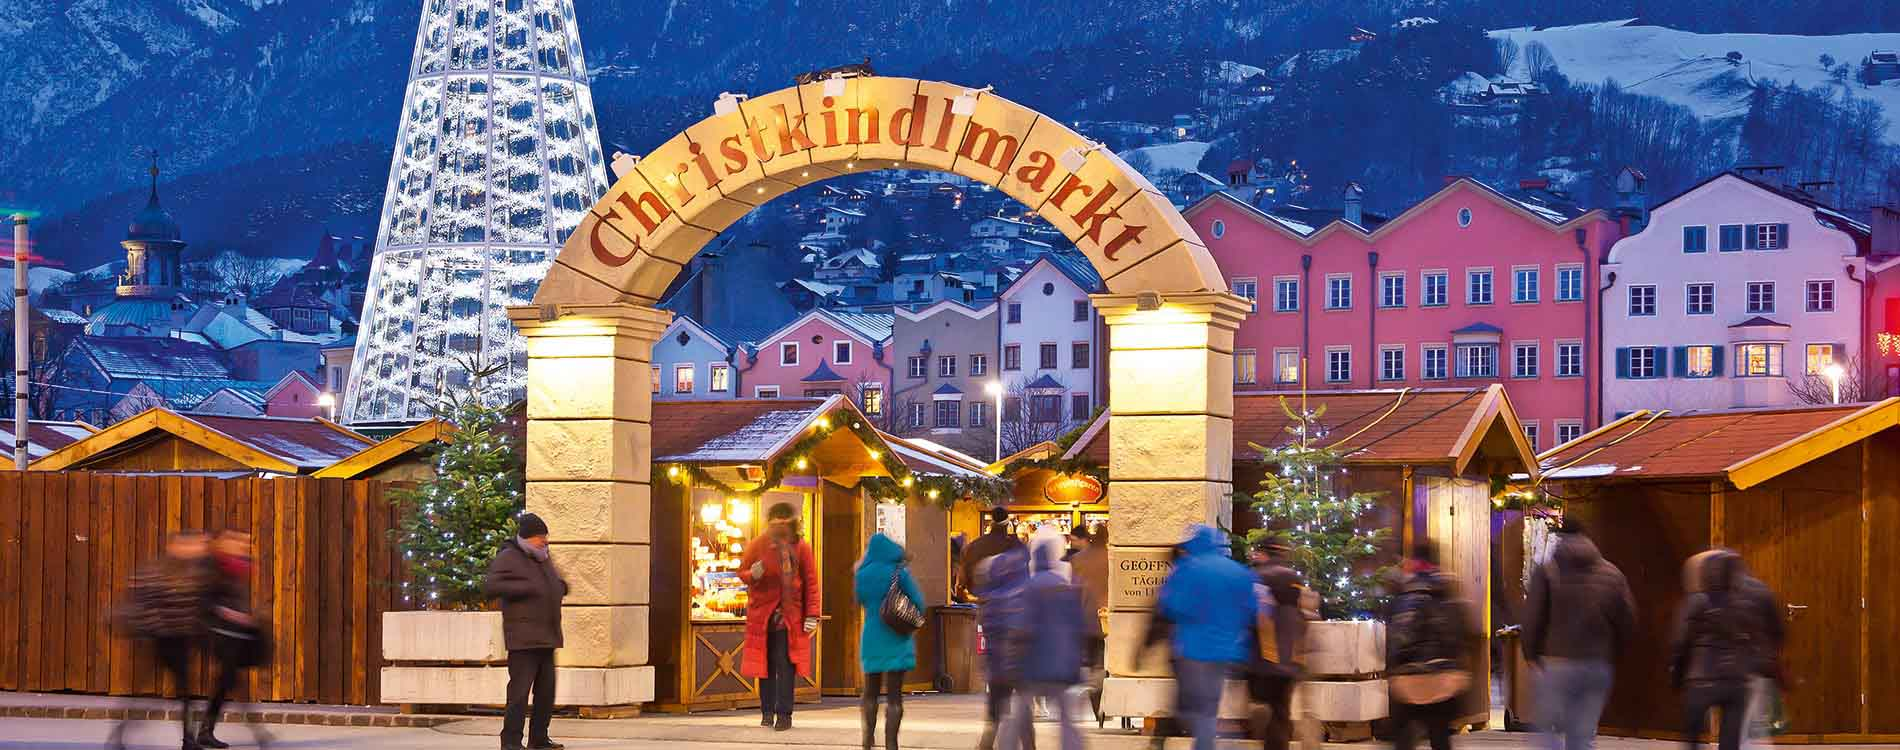 Authentic Austrian Festivities Innsbruck Kitzbühel Grossarl niche destinations